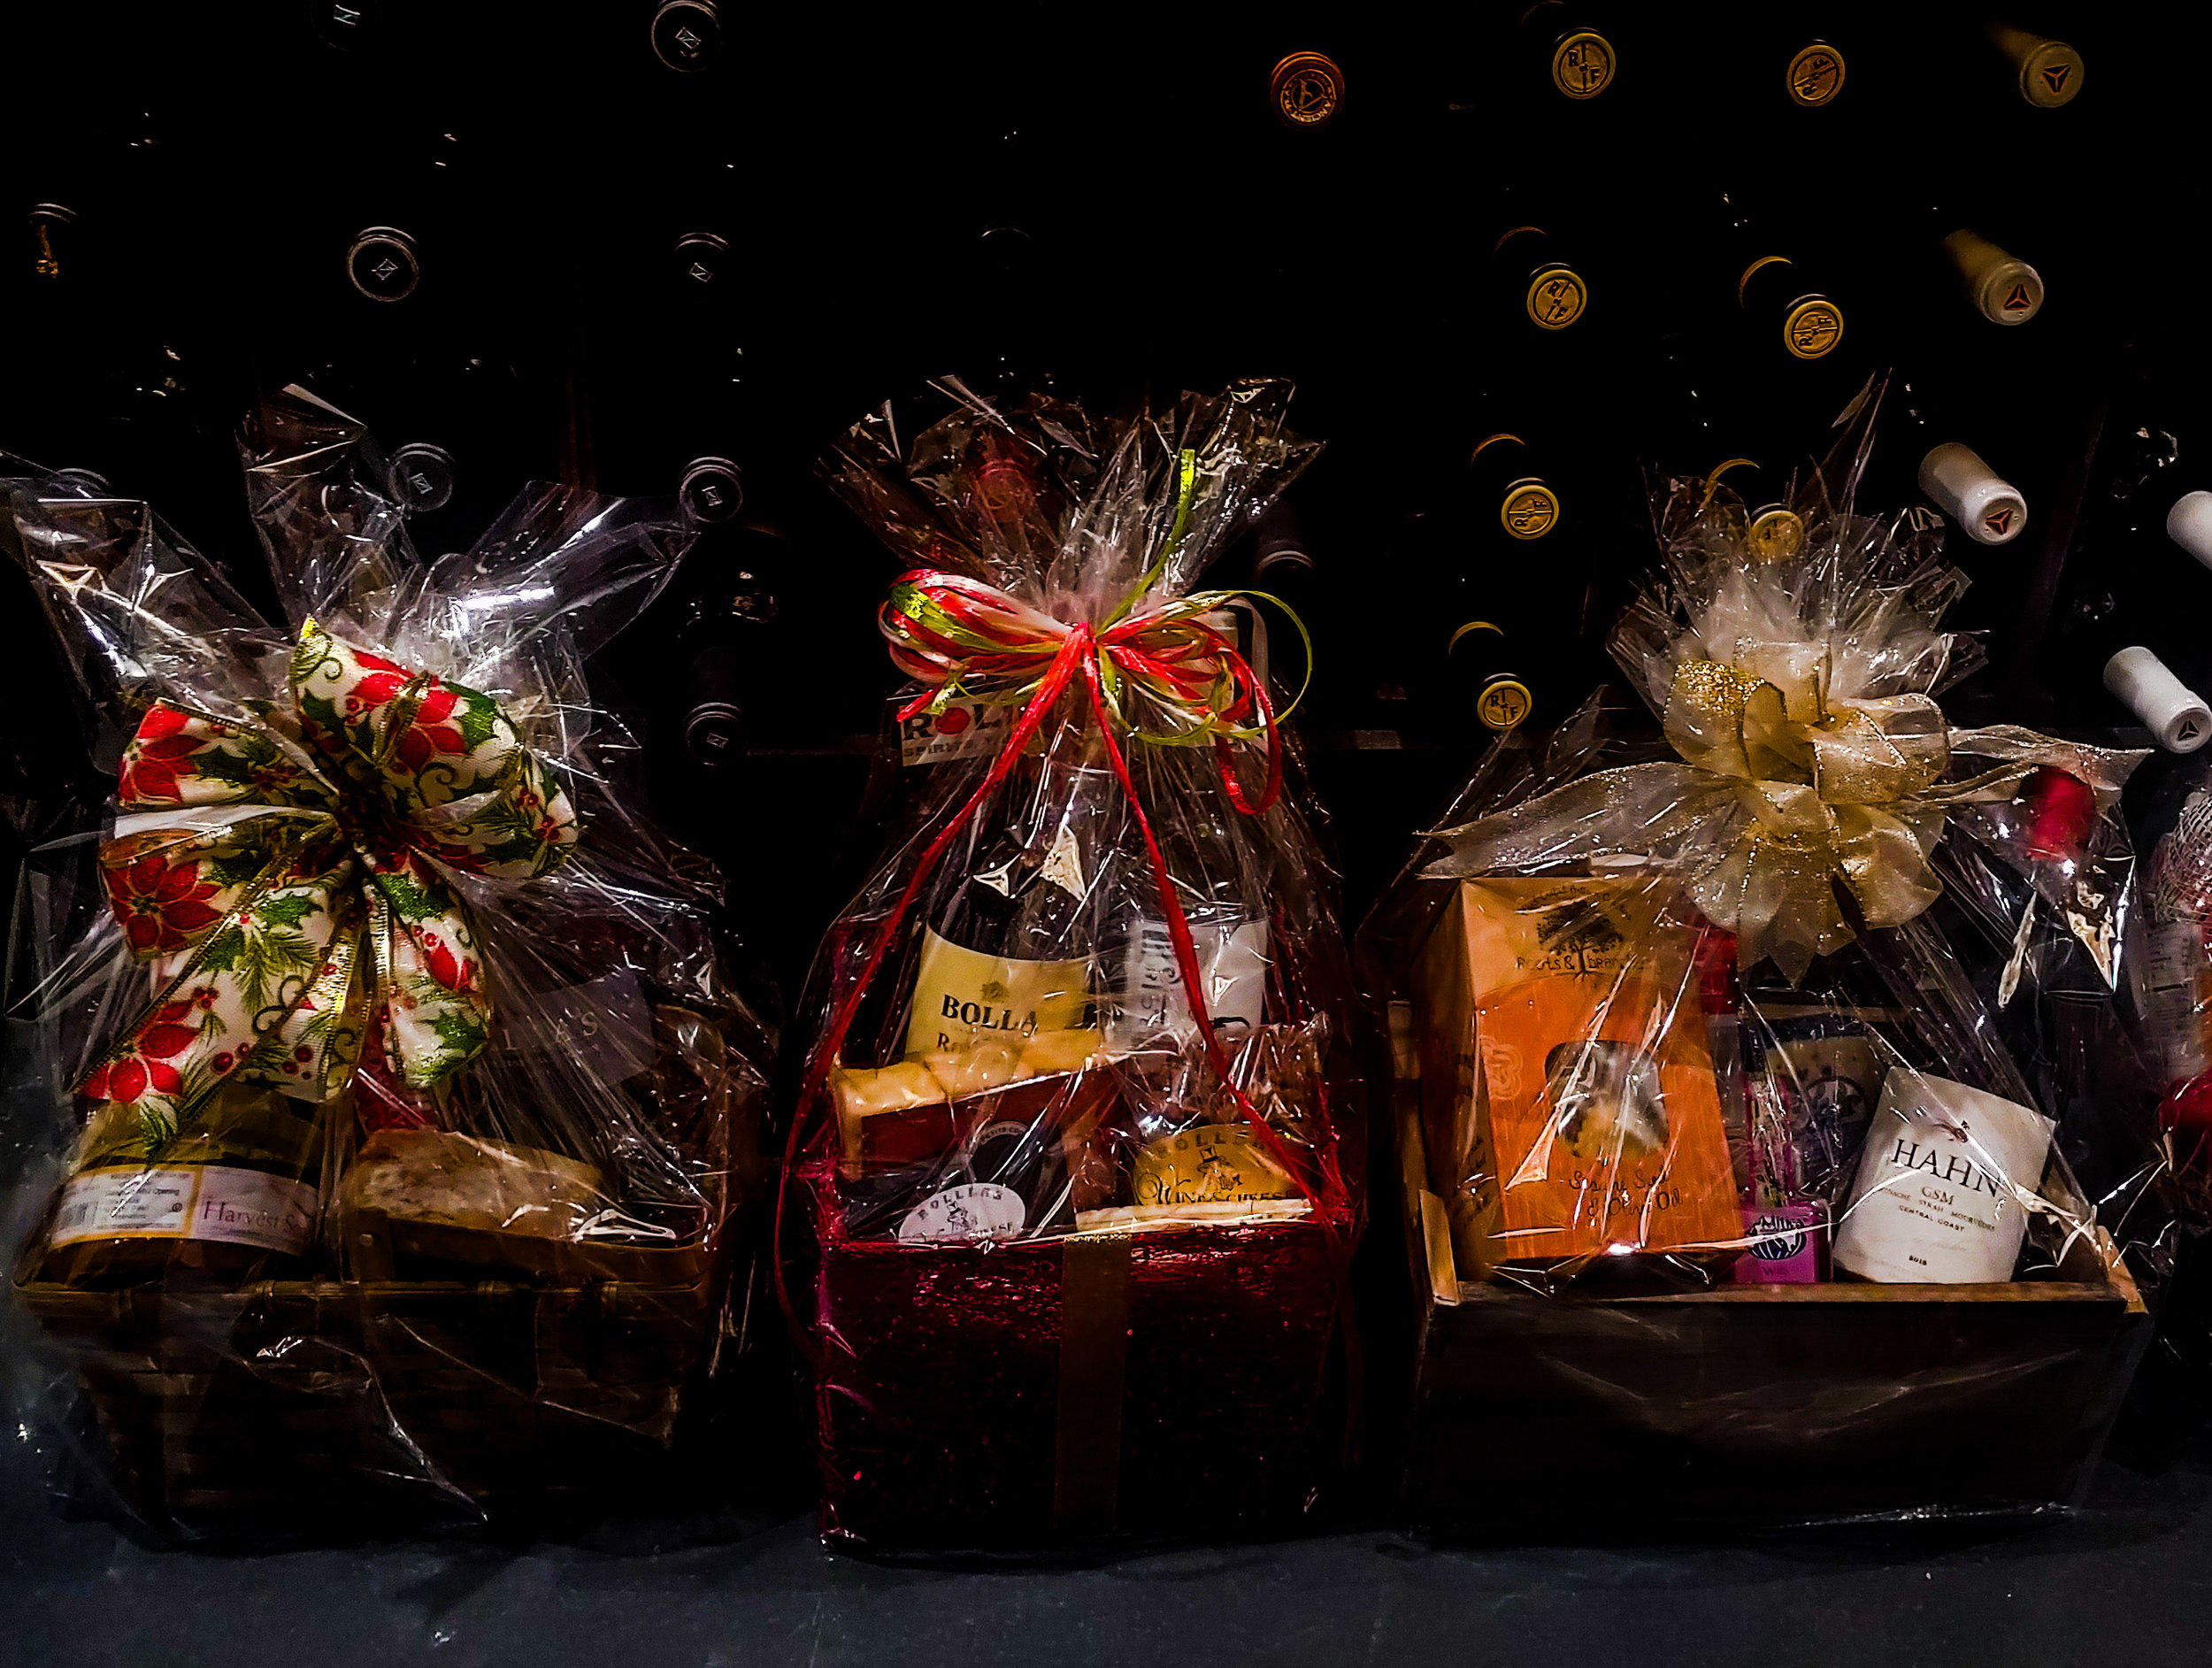 Gift Baskets - Perfect for any occasion, a personalized gift basket ensures no moment goes understated. Not sure what to include in your basket? Let our sommeliers select the perfect wine and accompaniments that are sure to please. We are pleased to offer same-day gift basket delivery in the Bluffton/Hilton Head area!